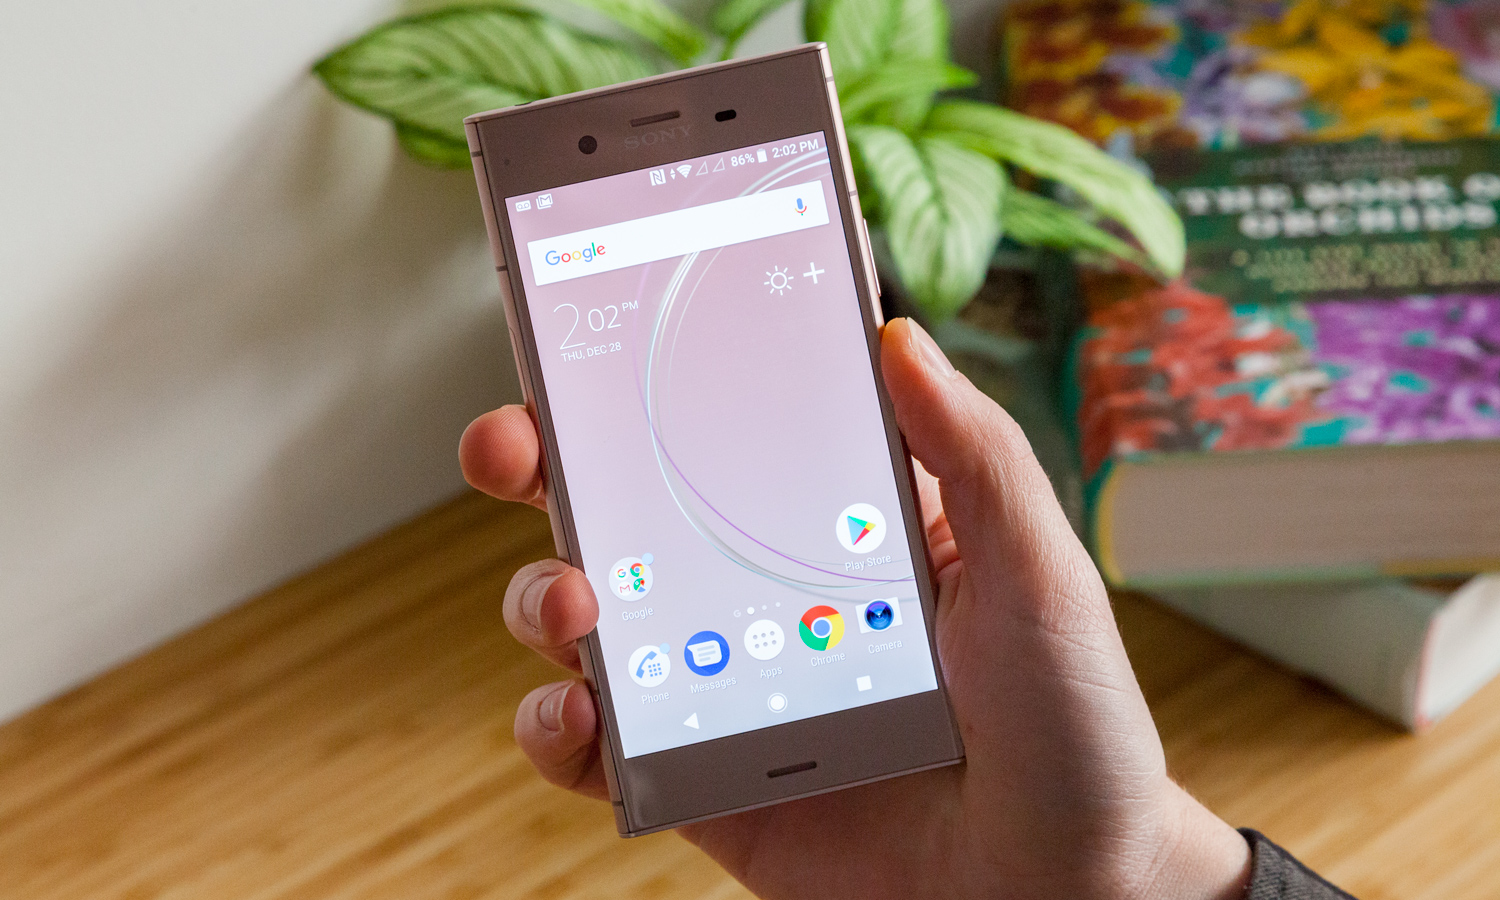 Sony Xz1 Compact System Update Xperia Xz1 Review This Sony Phone Is Stuck In The Past